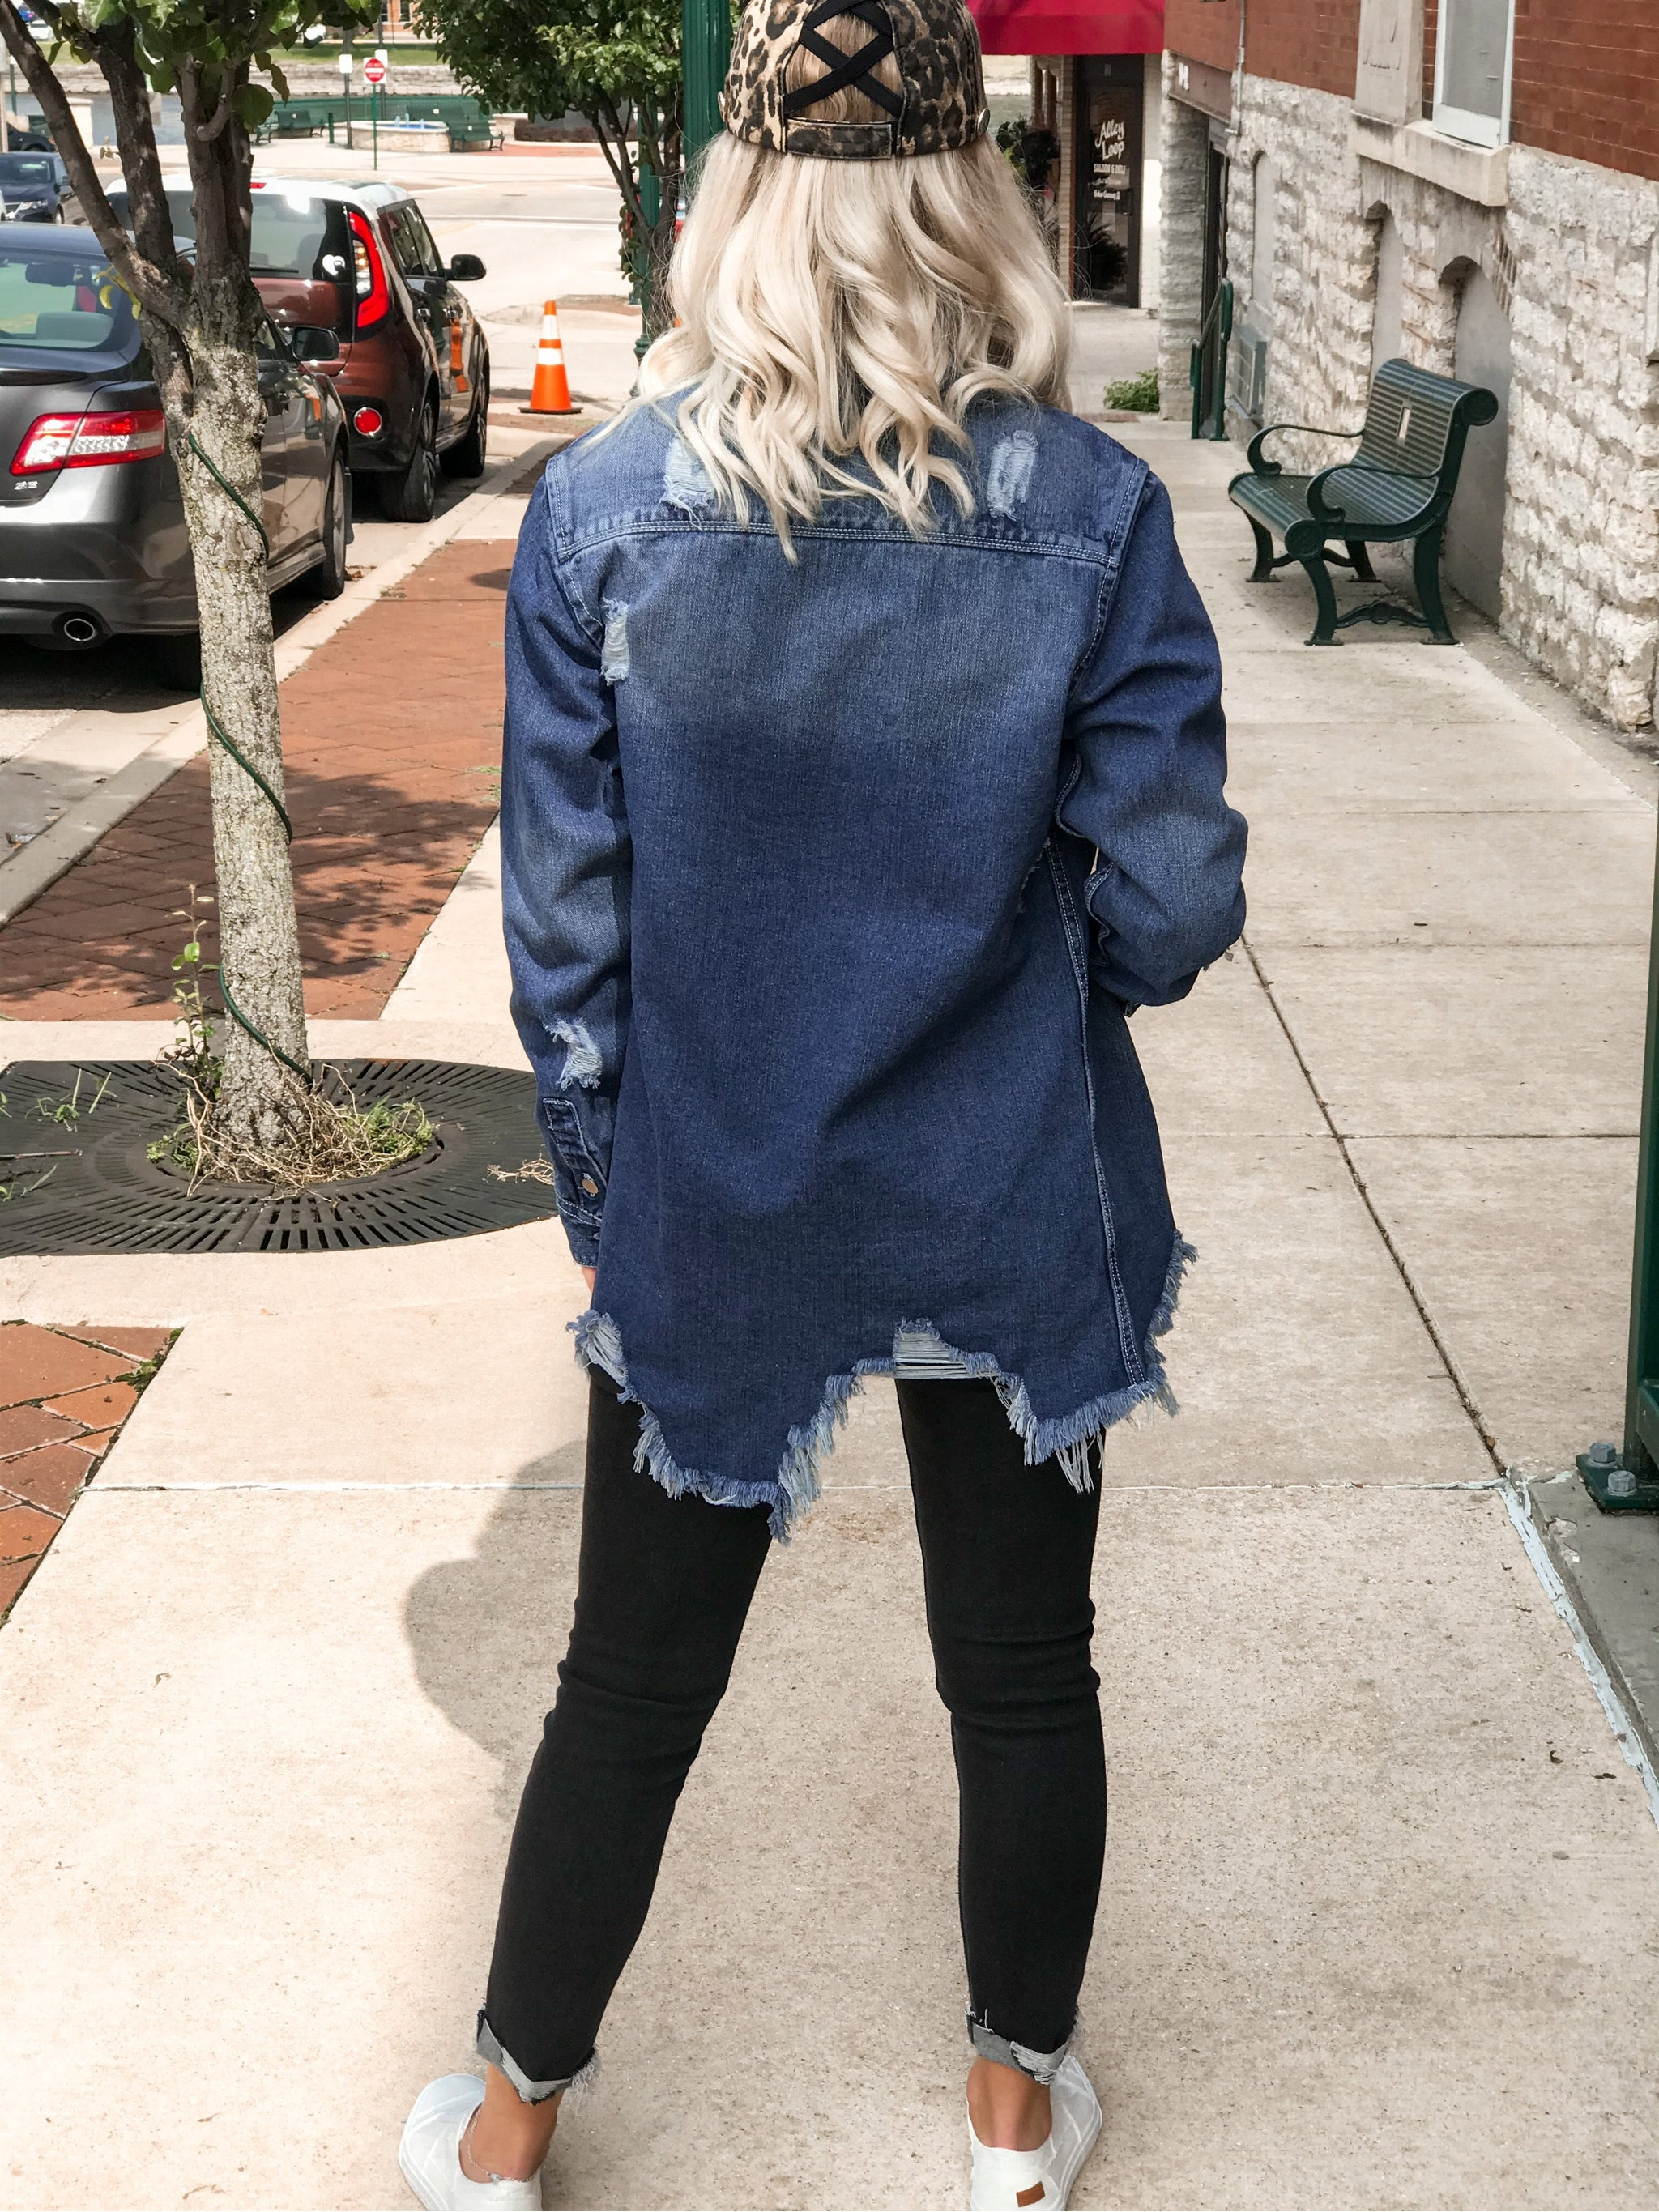 THE KELLI SUPER DISTRESSED DENIM SHIRT JACKET